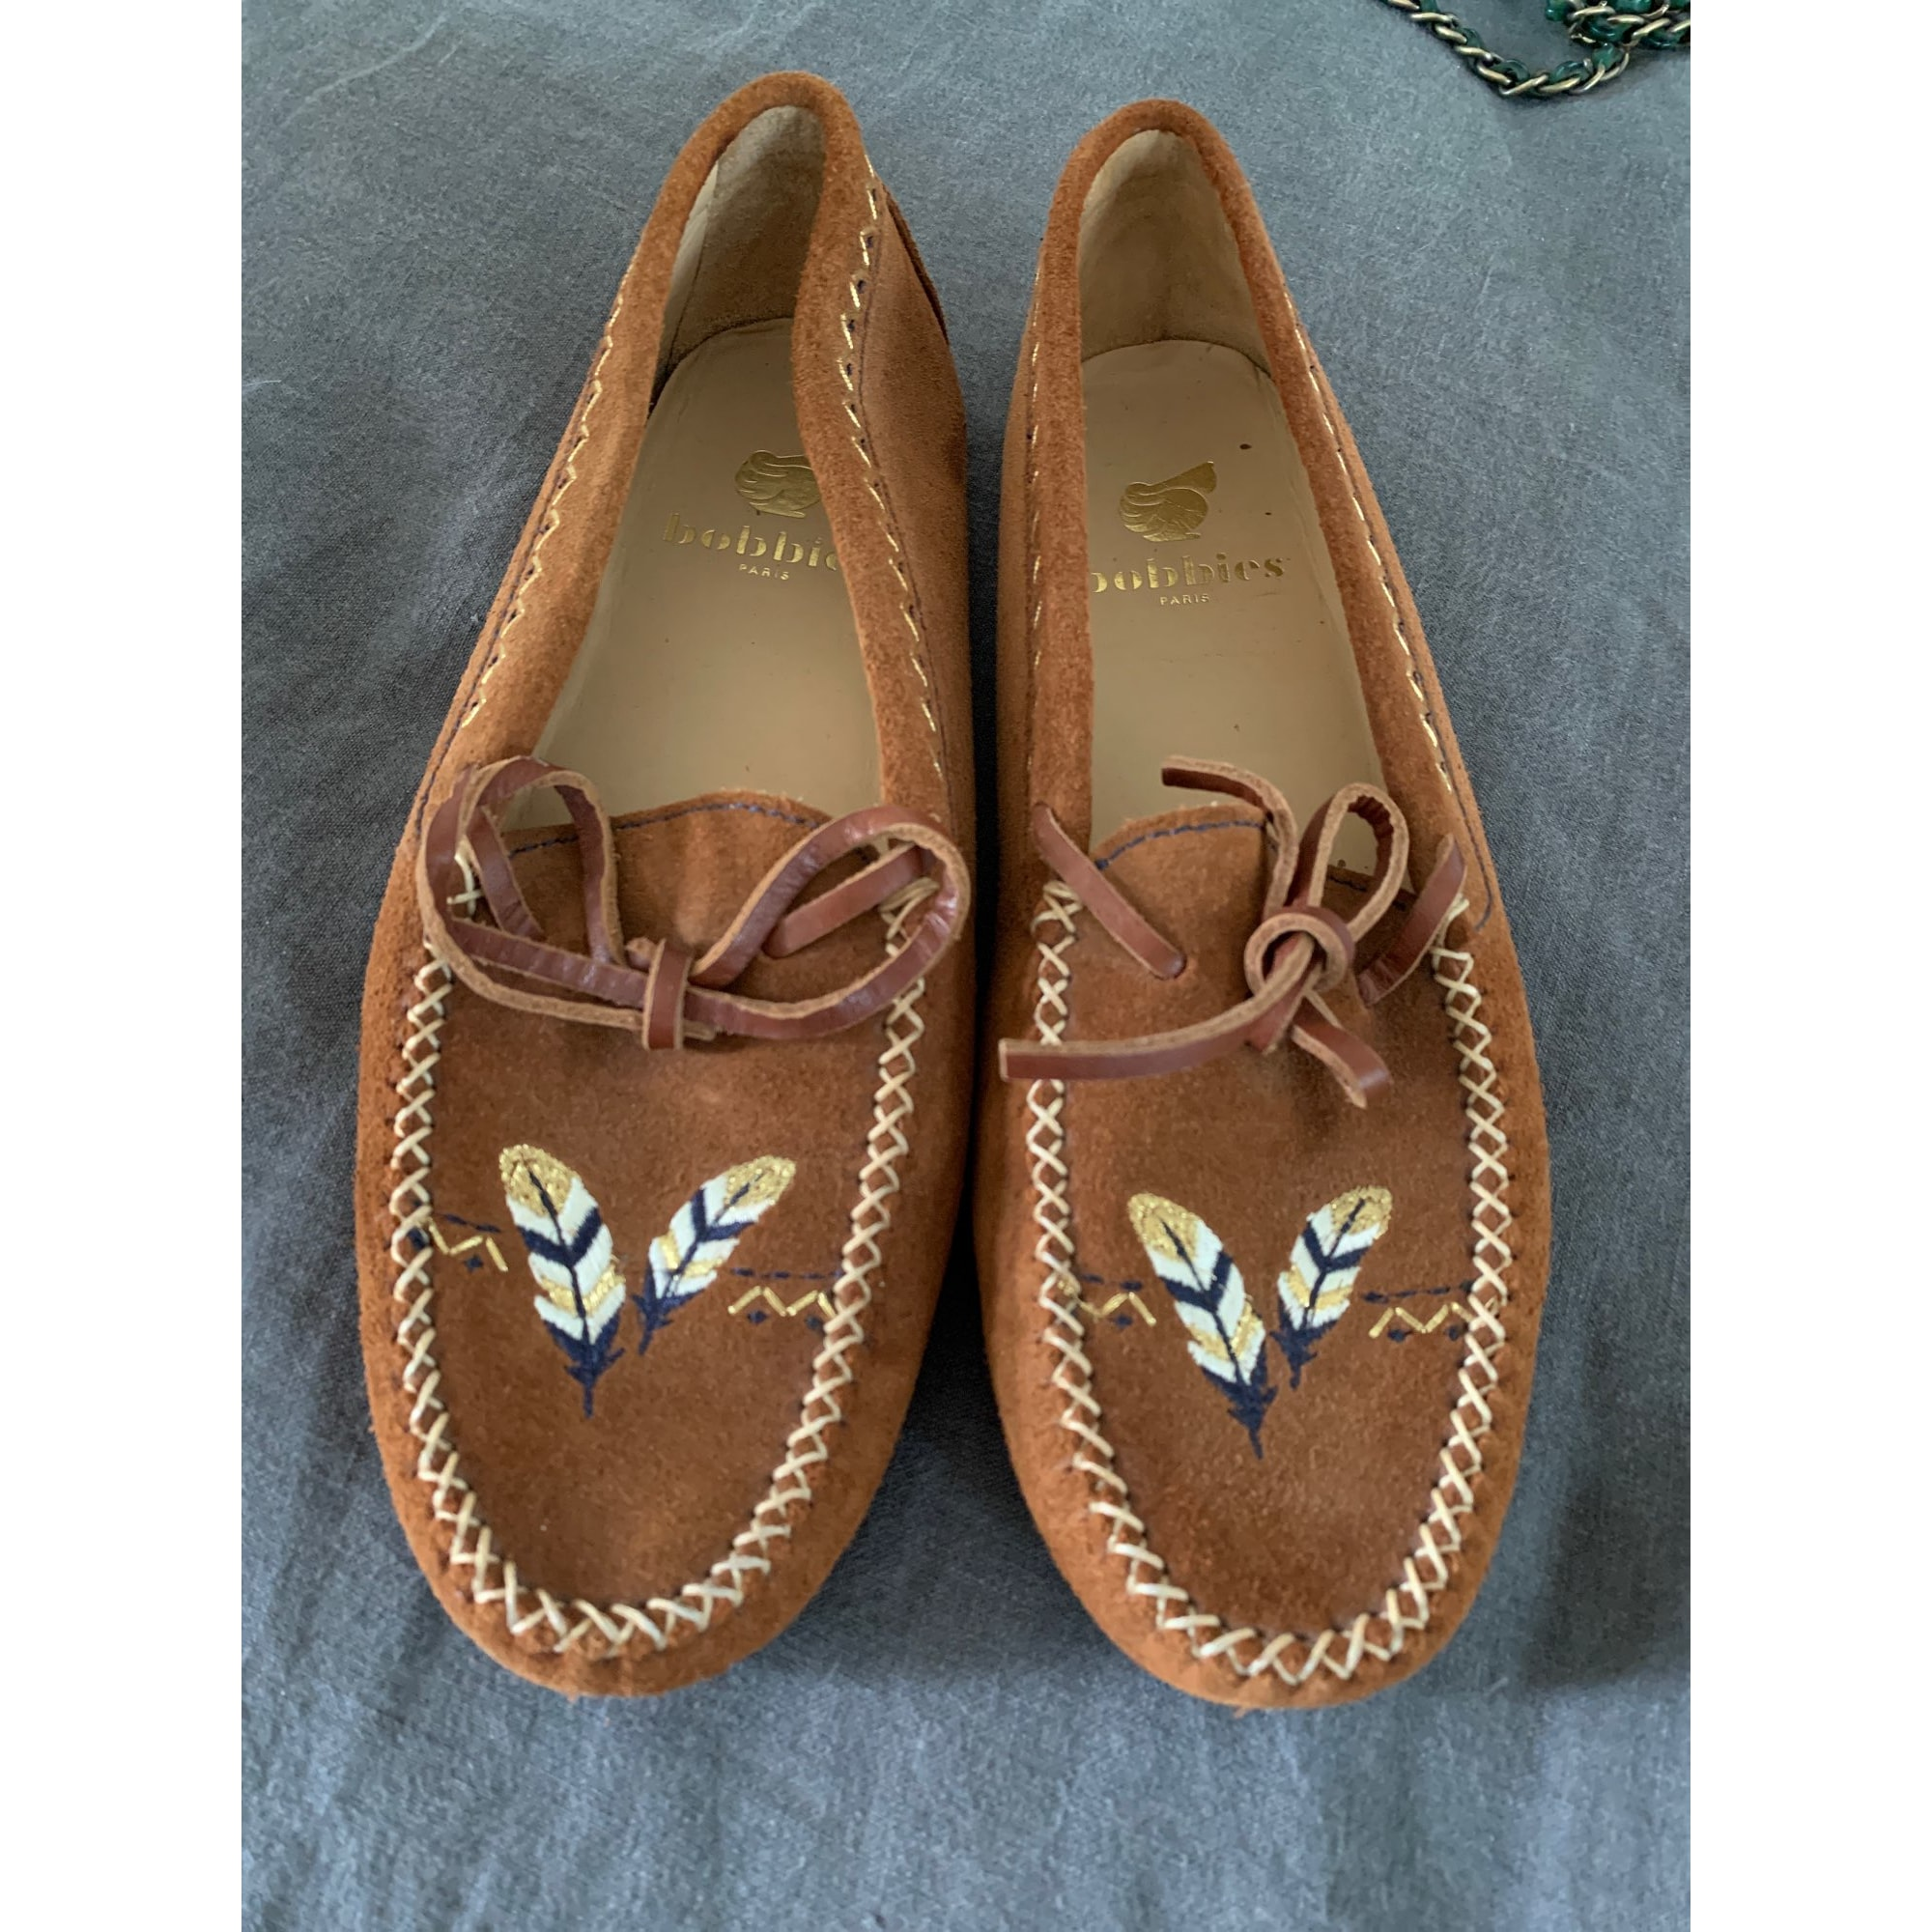 Mocassins BOBBIES Beige, camel